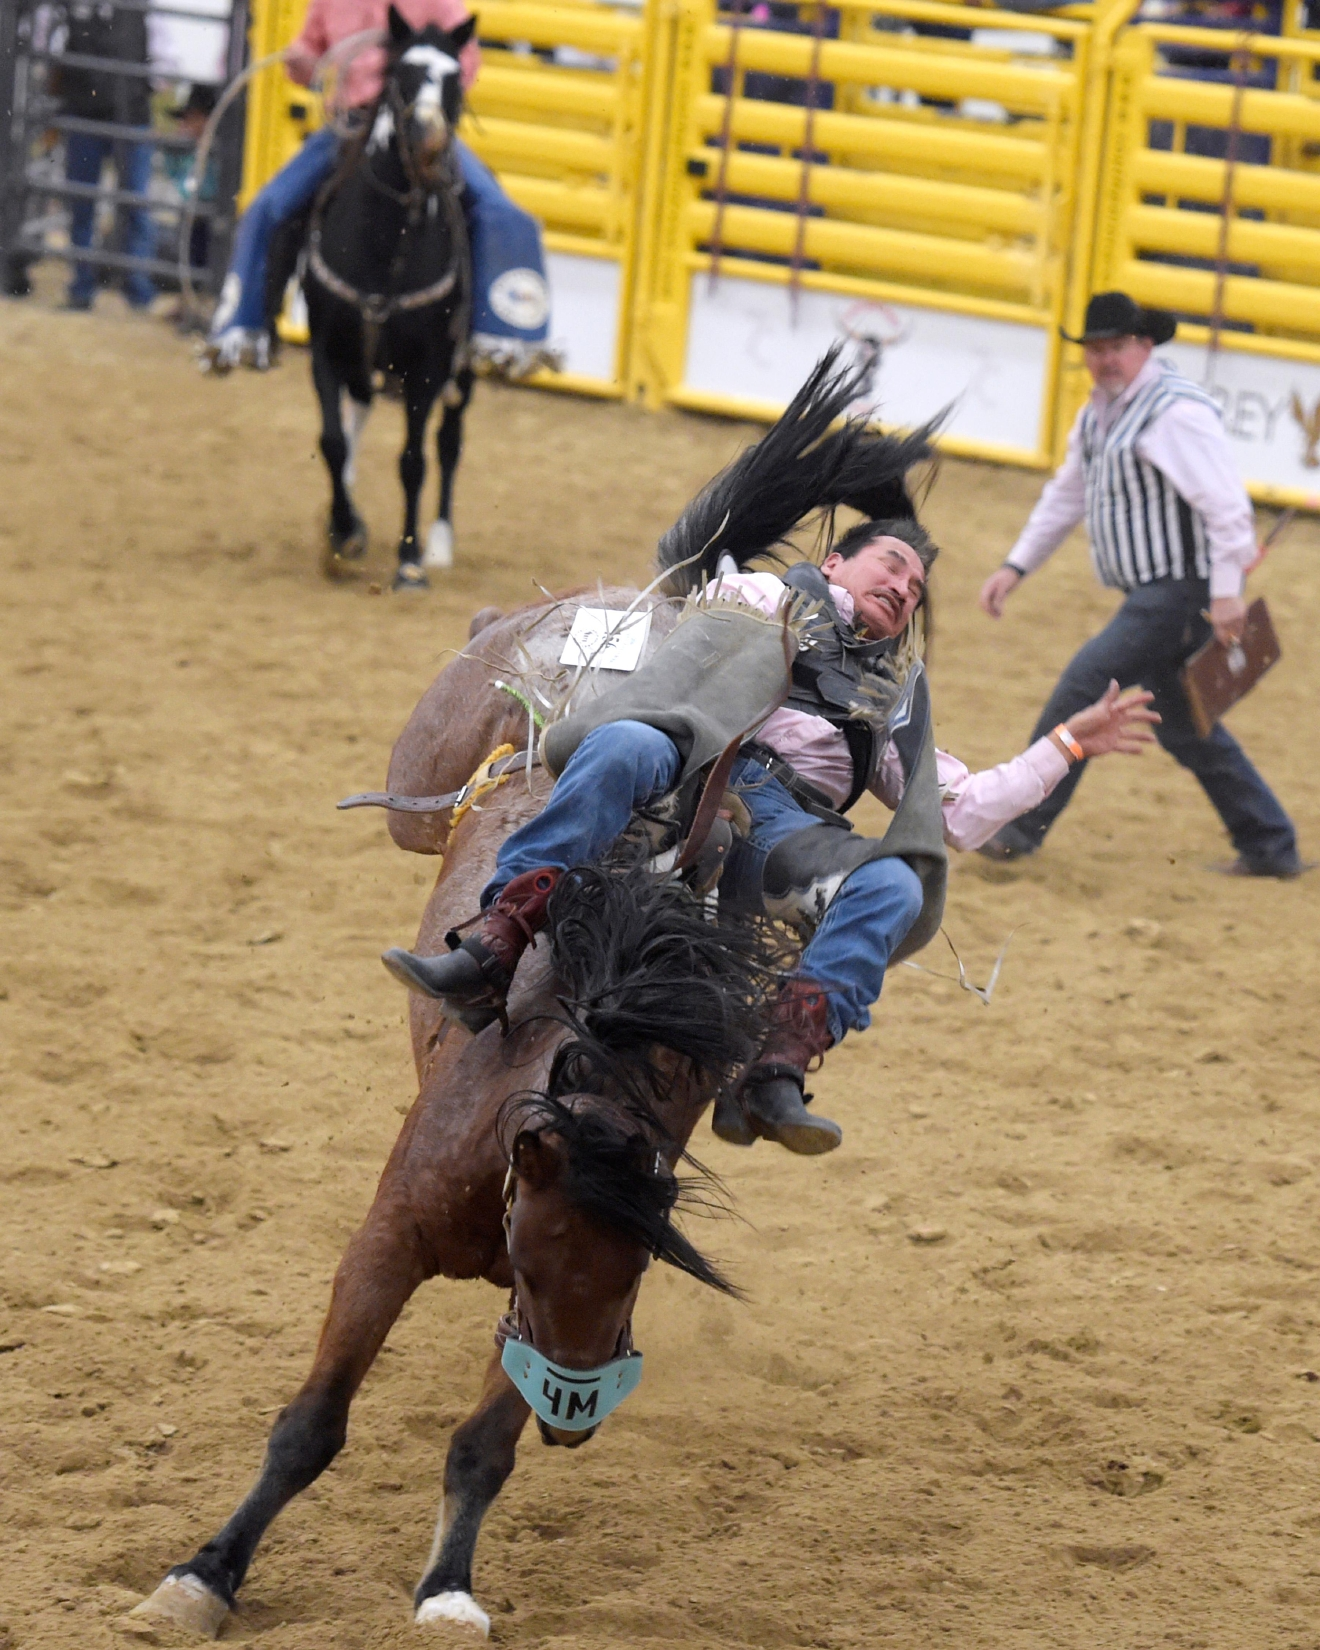 Gallery Indian National Finals Rodeo At South Point Kvcw